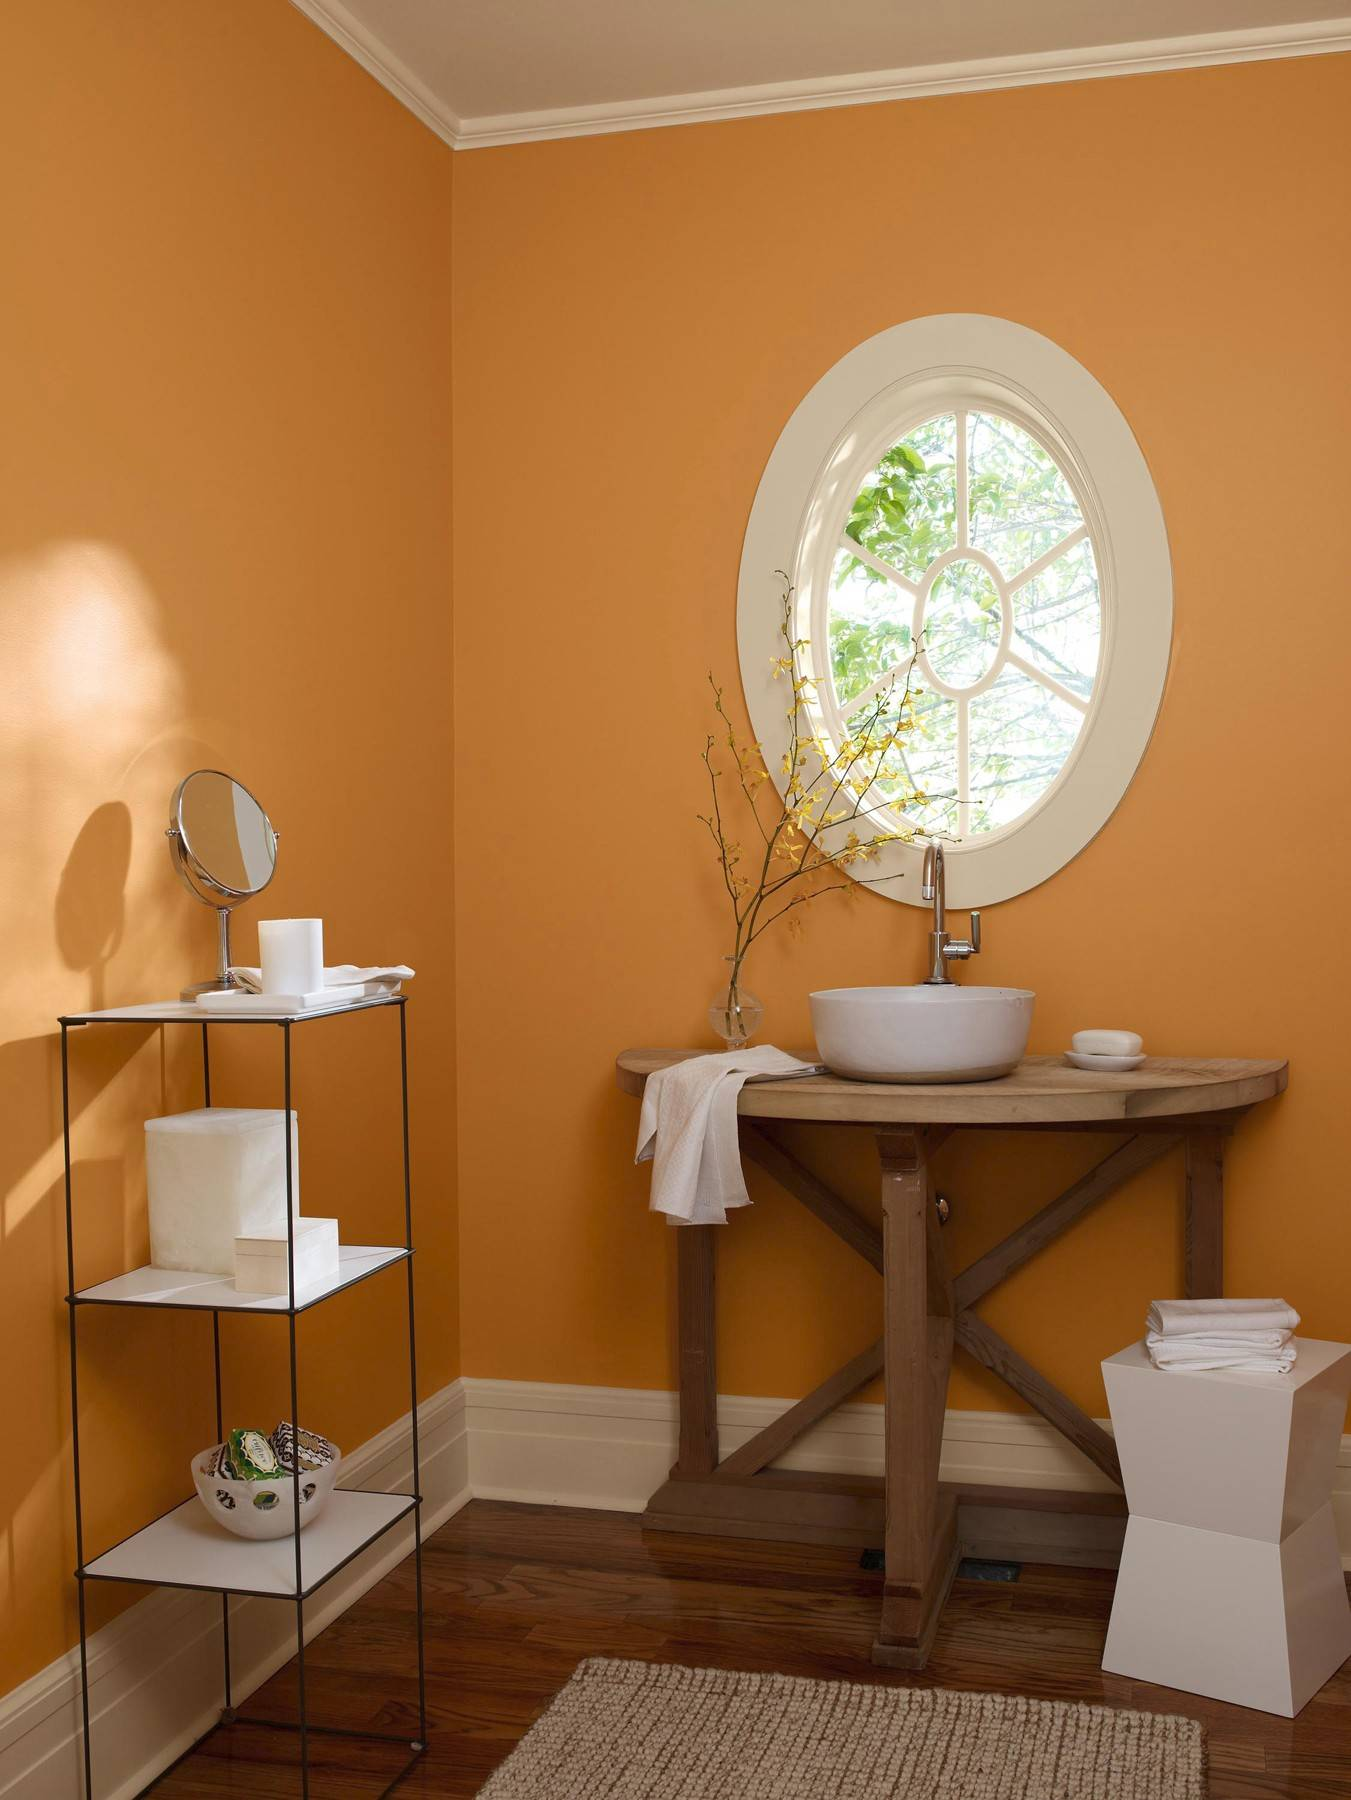 For a distinctive little powder room, one can afford to break a few unwritten rules.